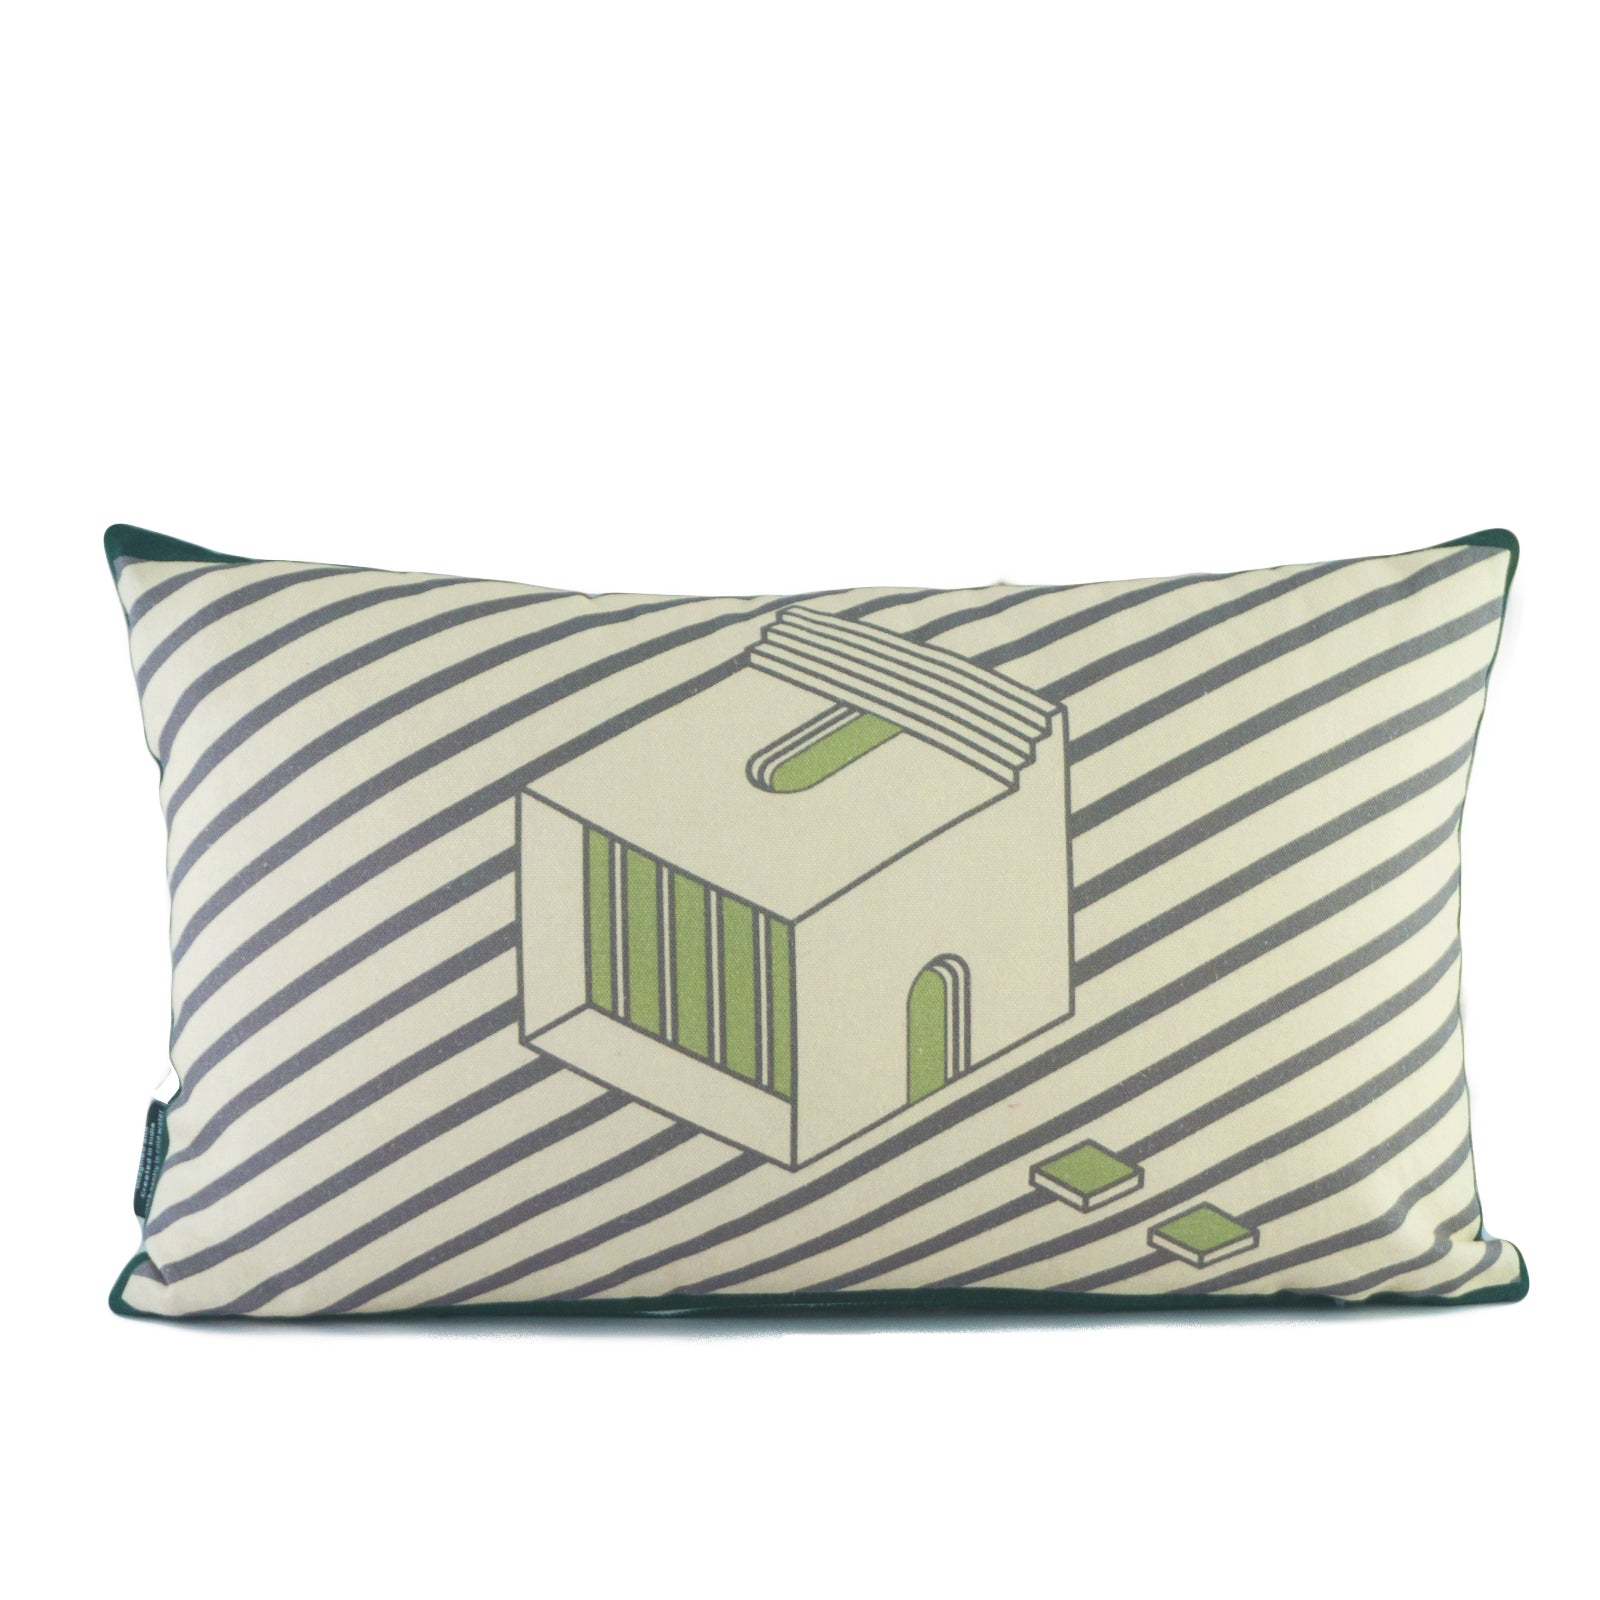 Green Lumbar Cushion Cover Set. 100% Cotton. Borderline PLAY